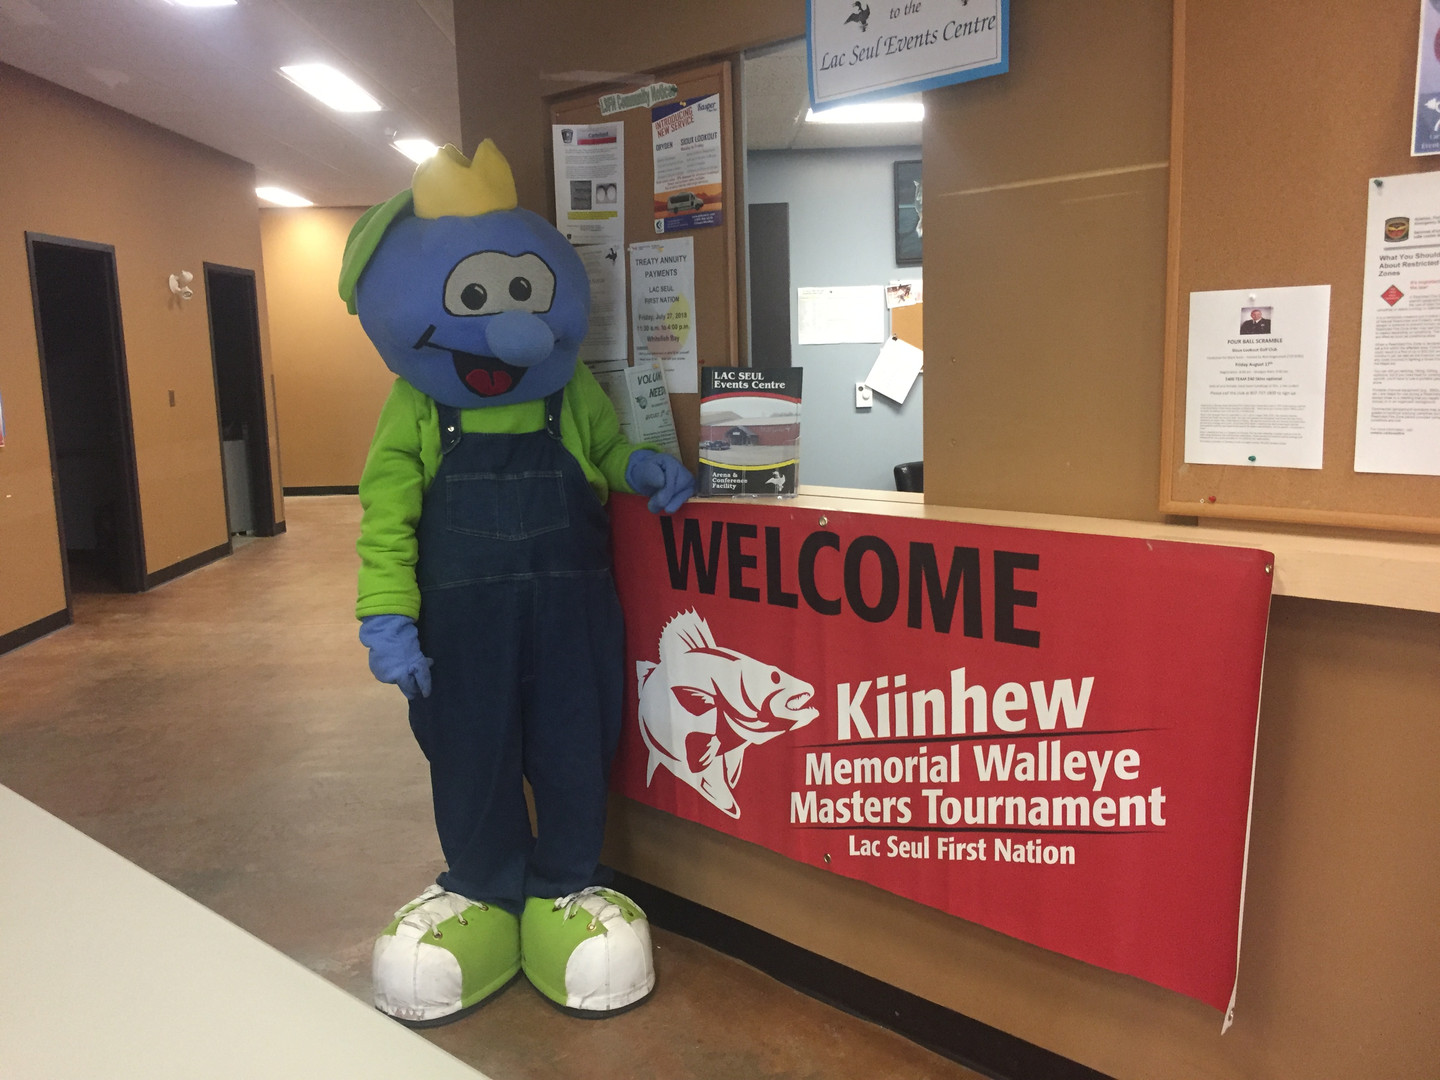 Kiinhew Memorial Walleye Masters Tournament in Lac Seul